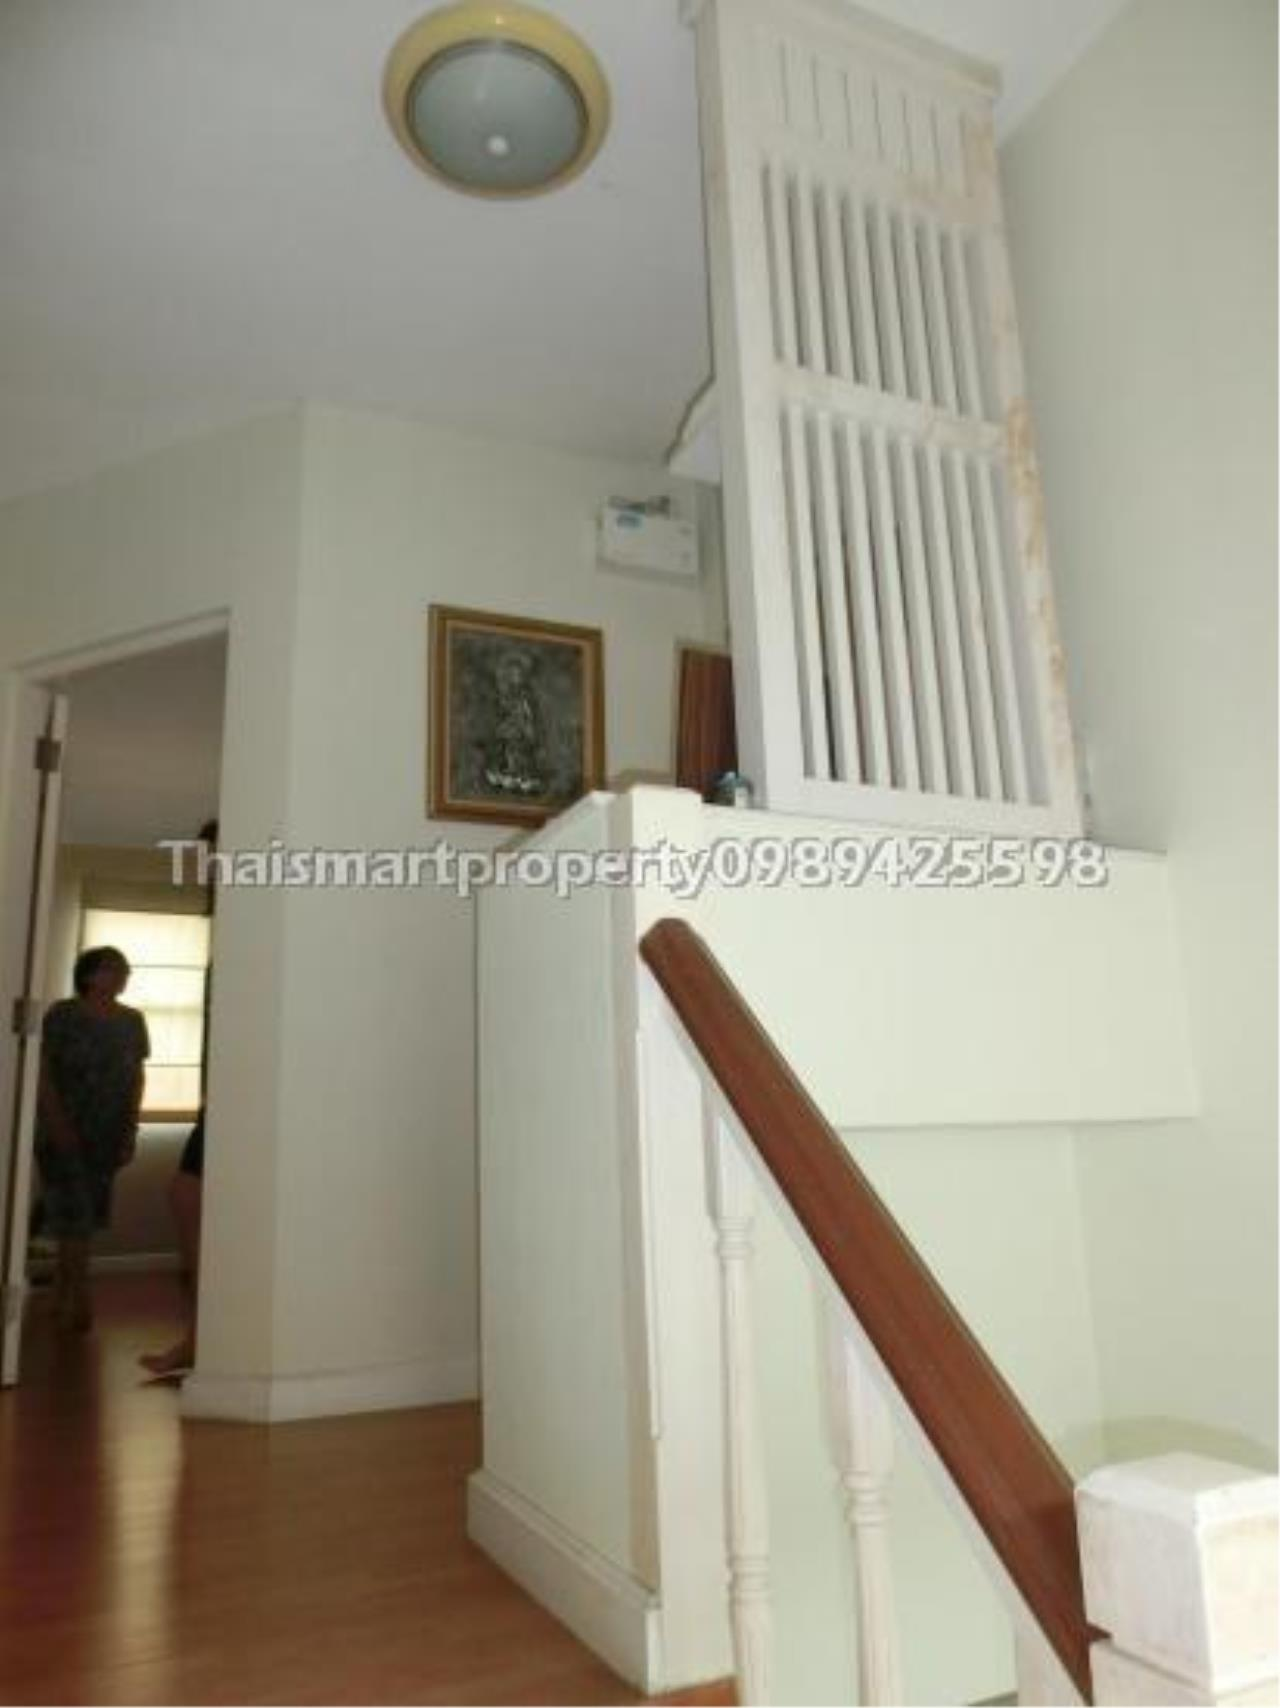 Thai Smart Property Agency's Chaiyapruek Village Rangsit Klong 4 single detached house. 7